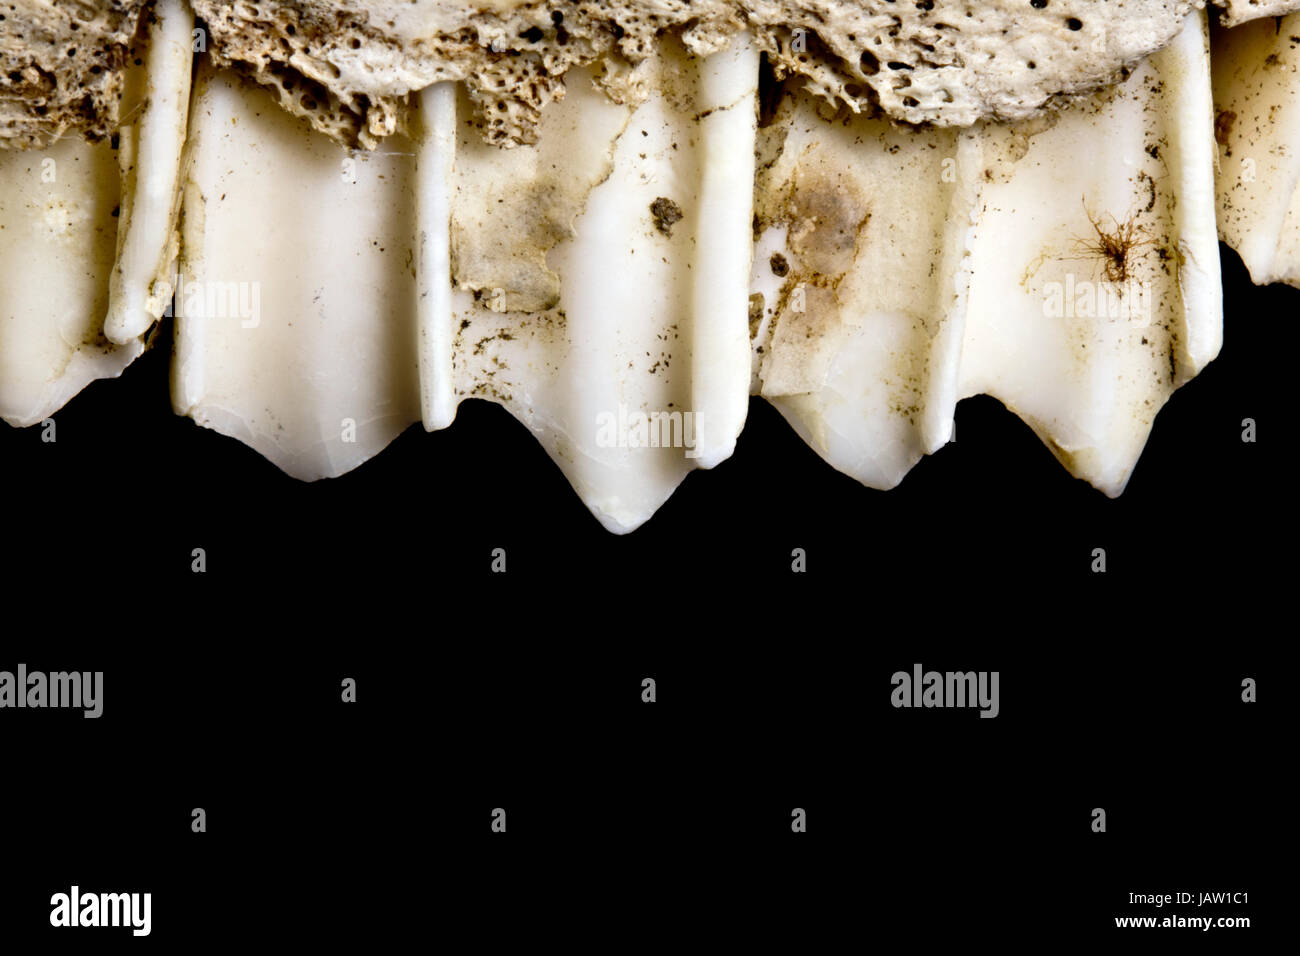 Close Up of A Herbivore Teeth and Jaw on Black Background - Stock Image